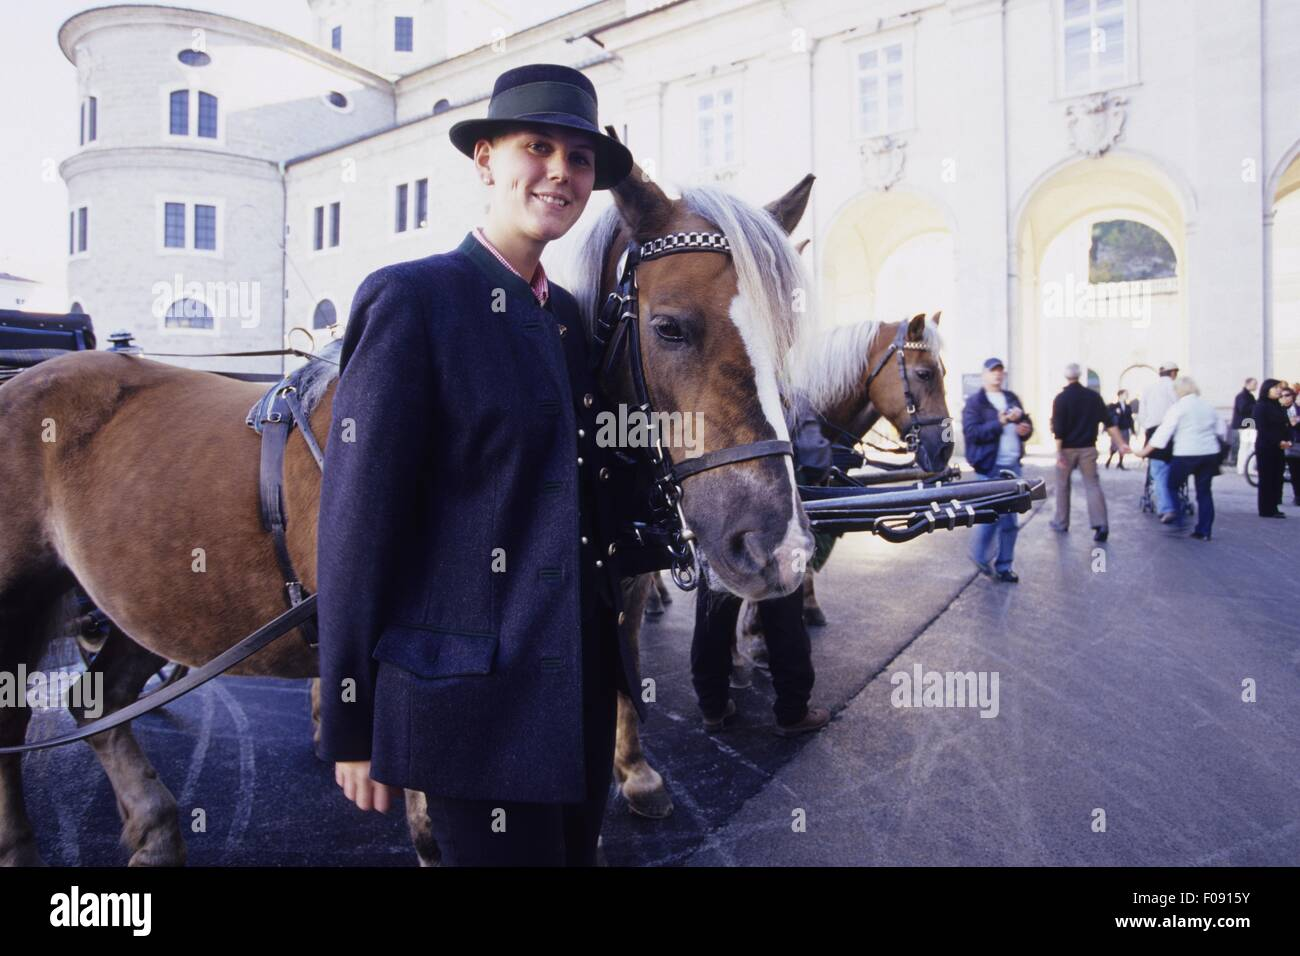 Woman standing besides horse at Cathedral Square, Salzburg, Austria - Stock Image